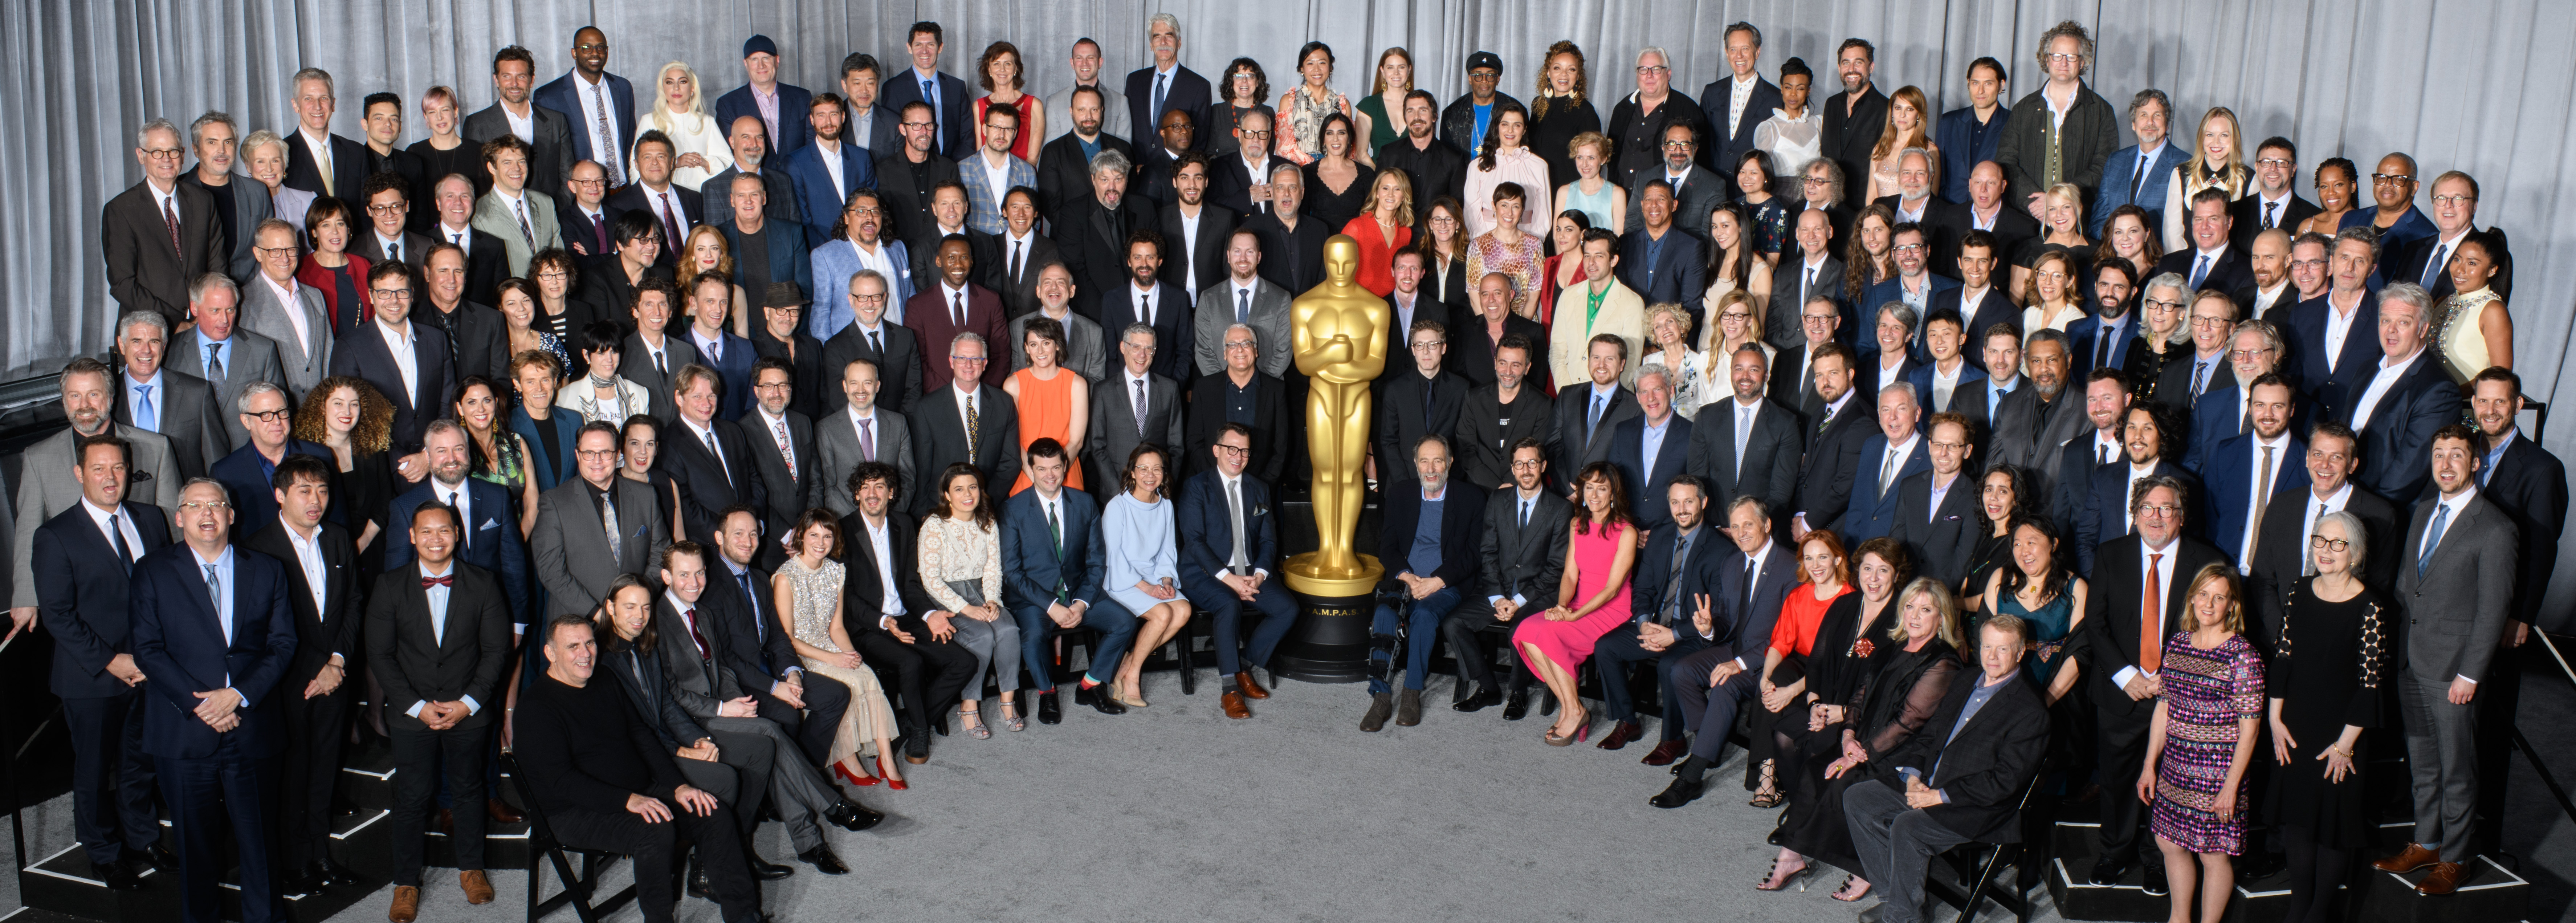 91st Oscars®, Nominees Luncheon, Class Photo